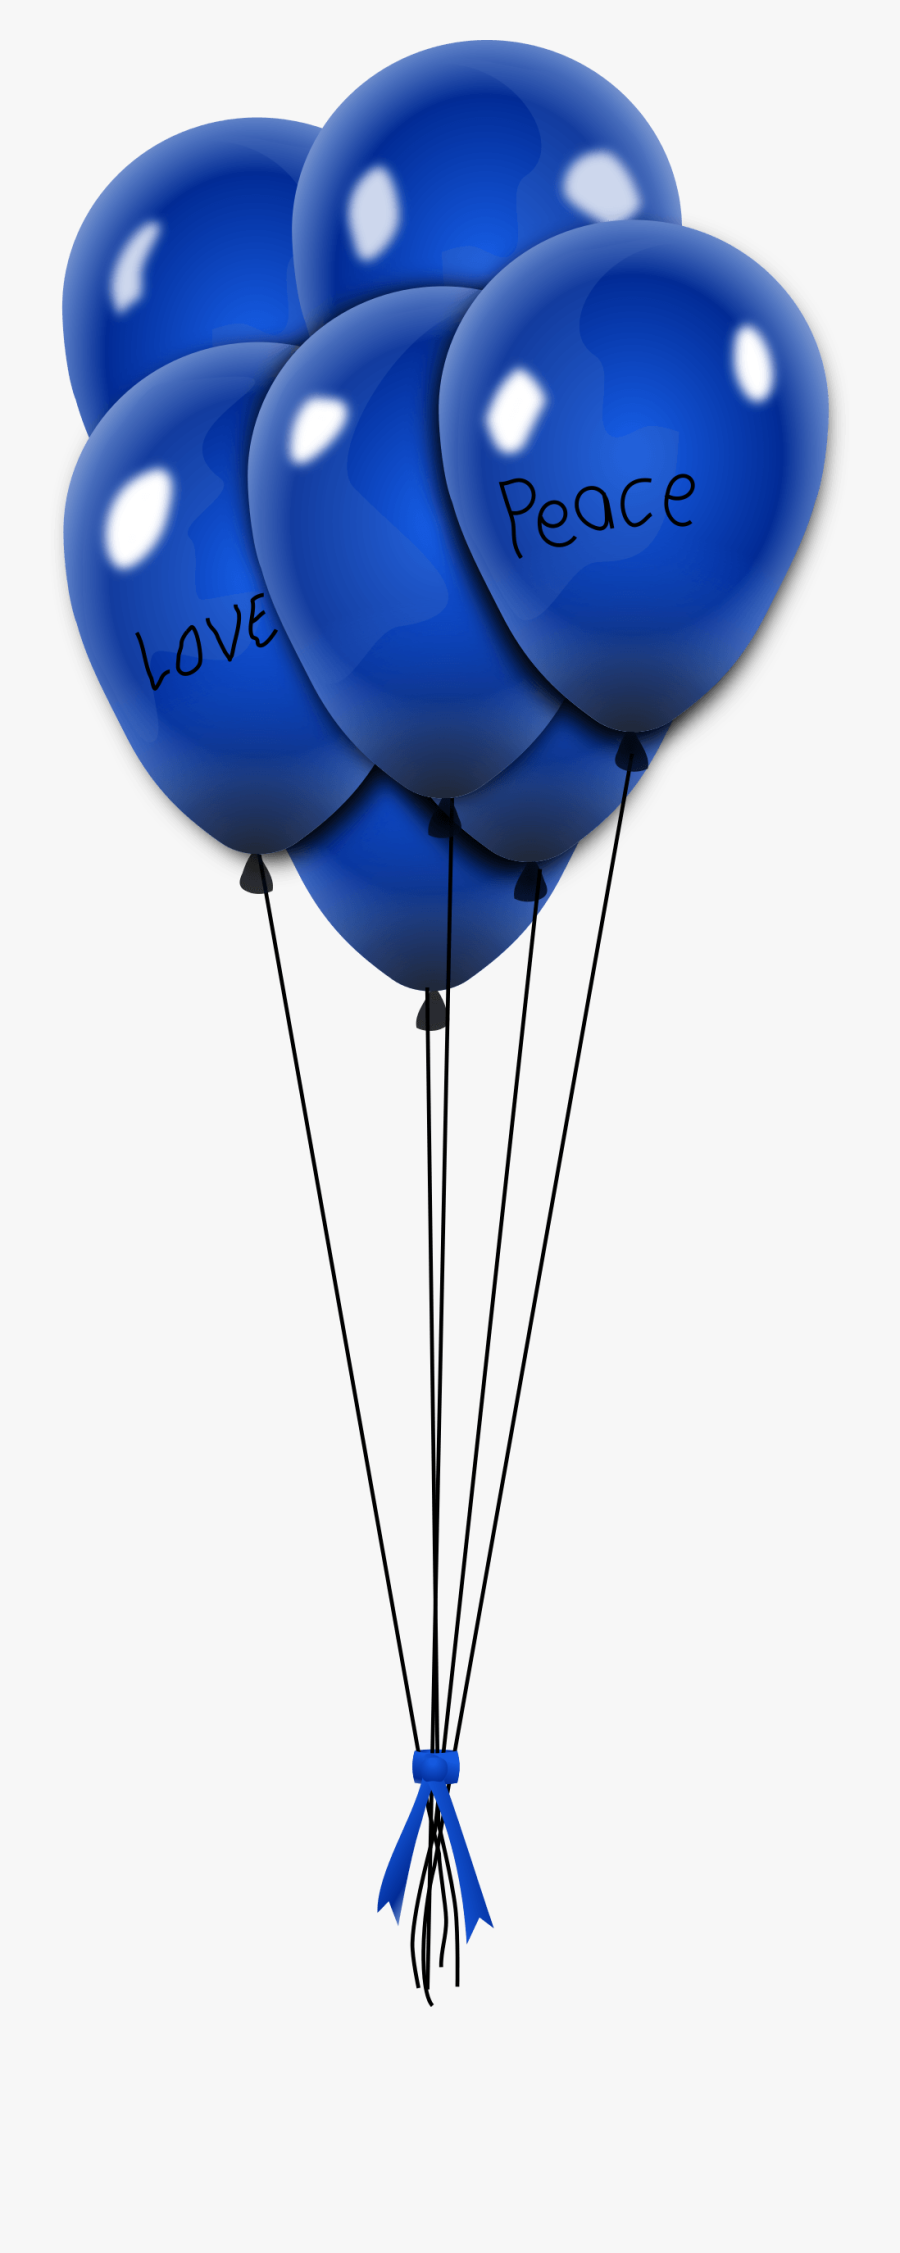 Clipart - Blue Party Balloons Png, Transparent Clipart